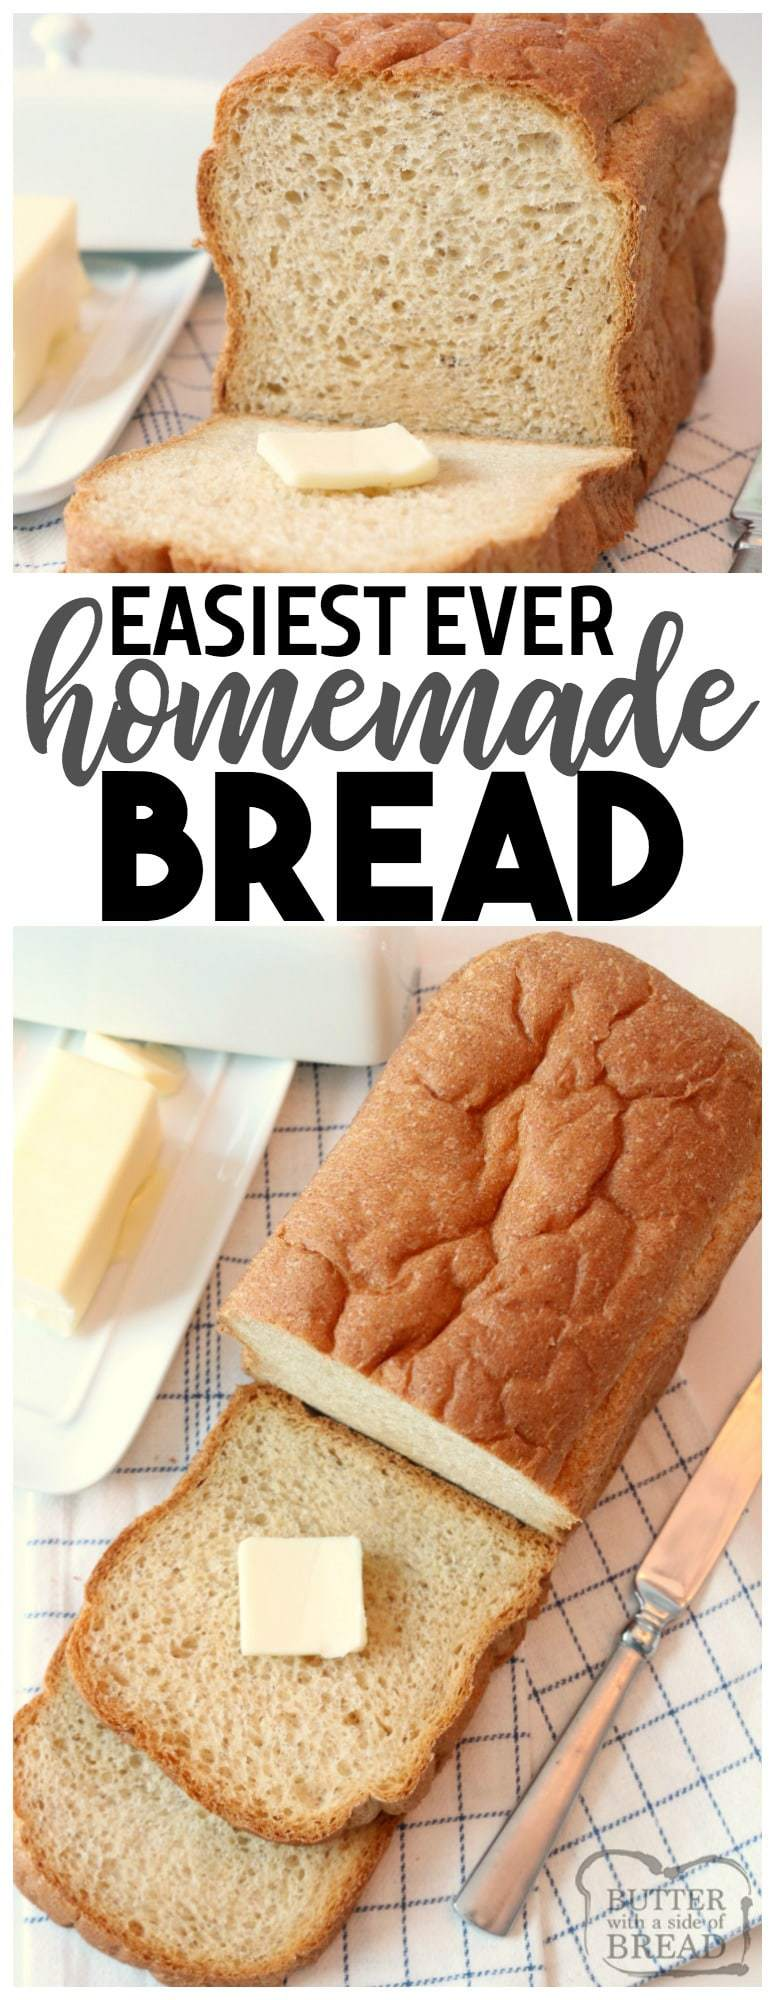 Easy Bread recipe  made with simple ingredients & detailed instructions showing how to make bread! Best homemade bread recipe for both beginners and expert bakers.